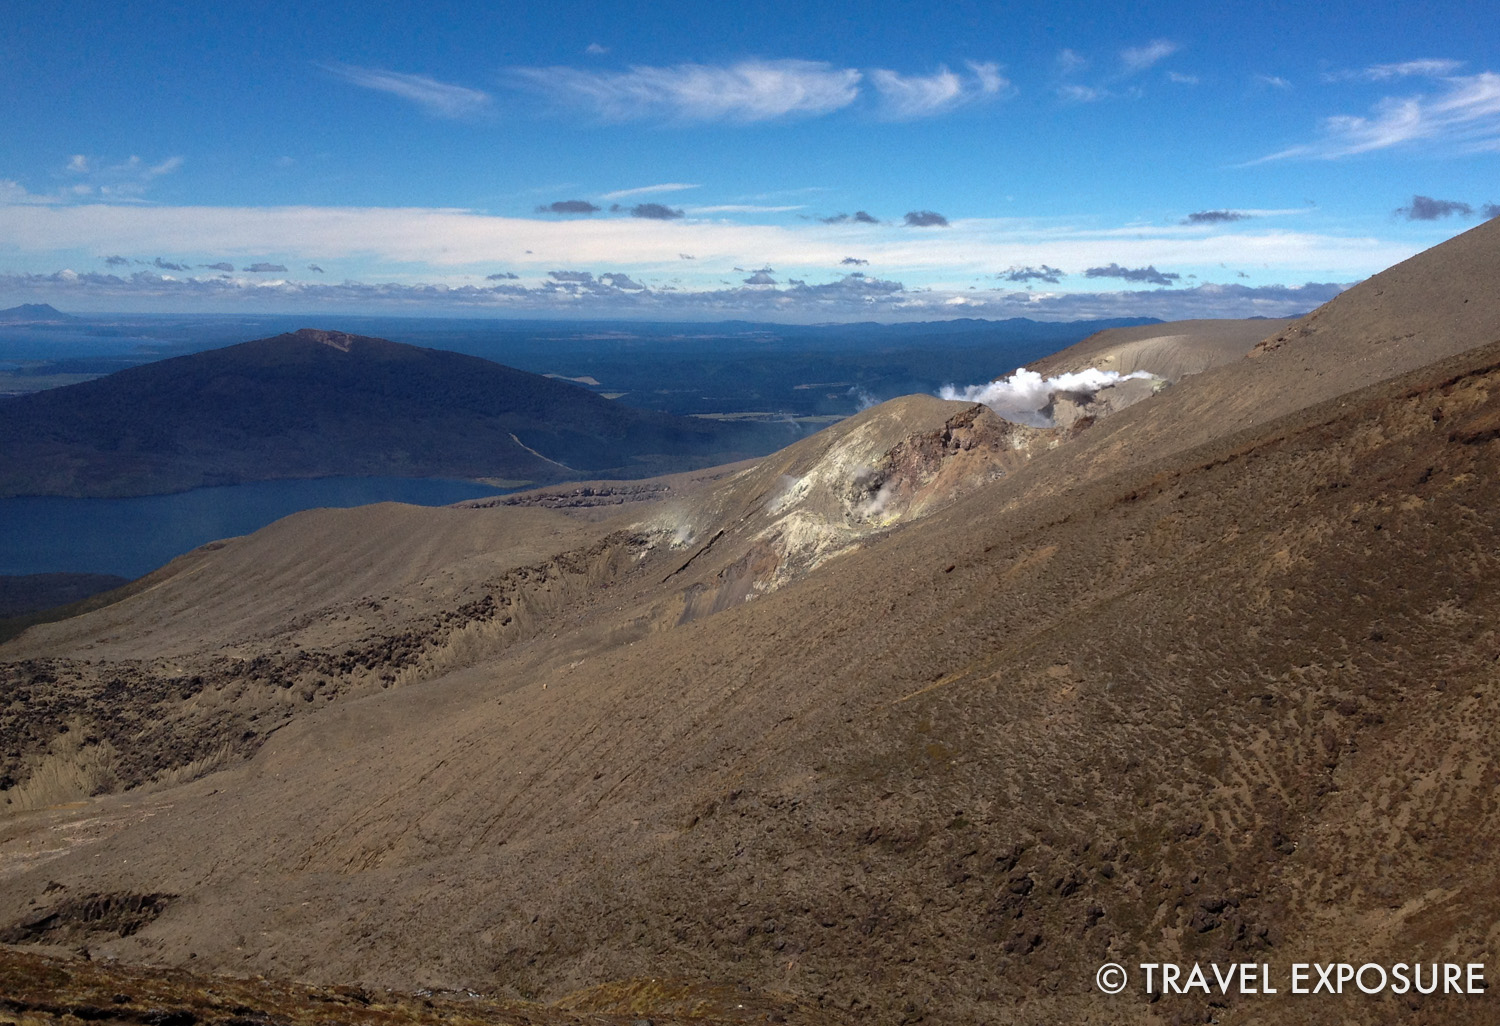 Tongariro Alpine Crossing Hike - you can see the Te Maari crater still smoking from the 2012 eruption